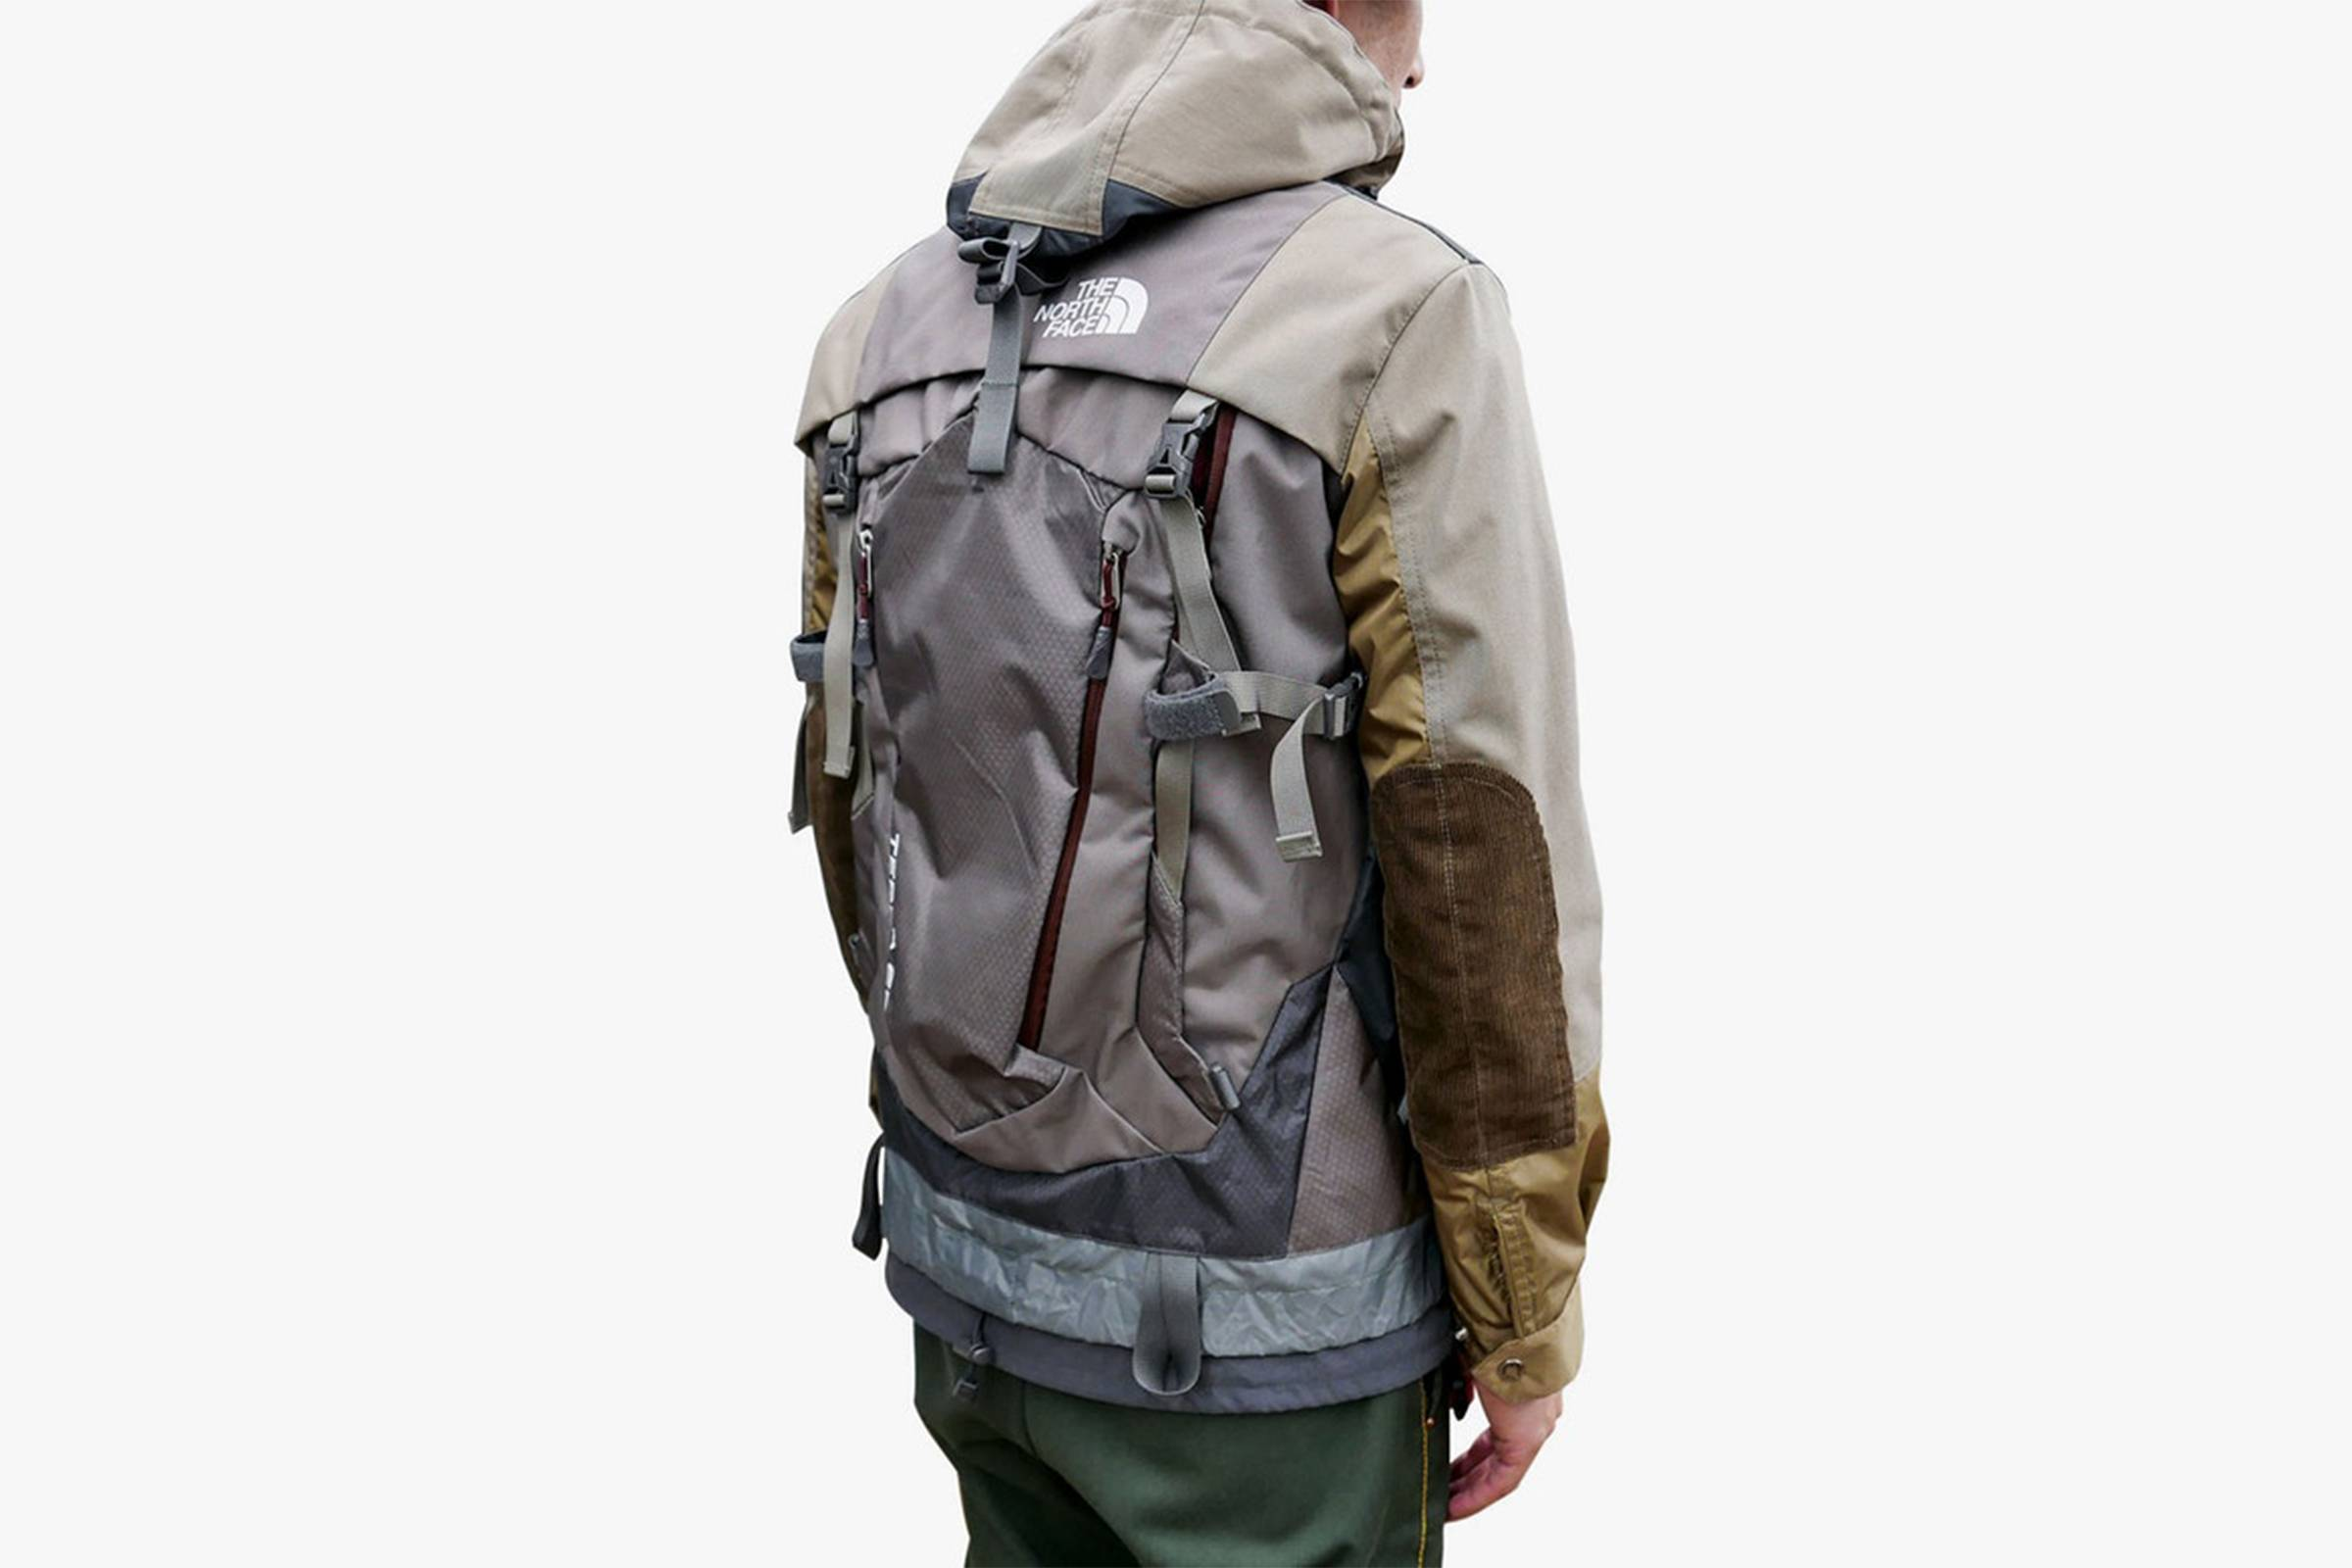 Junya Watanabe MAN x Karrimor x The North Face collaborative jacket/backpack hybrid (Spring/Summer 2018)